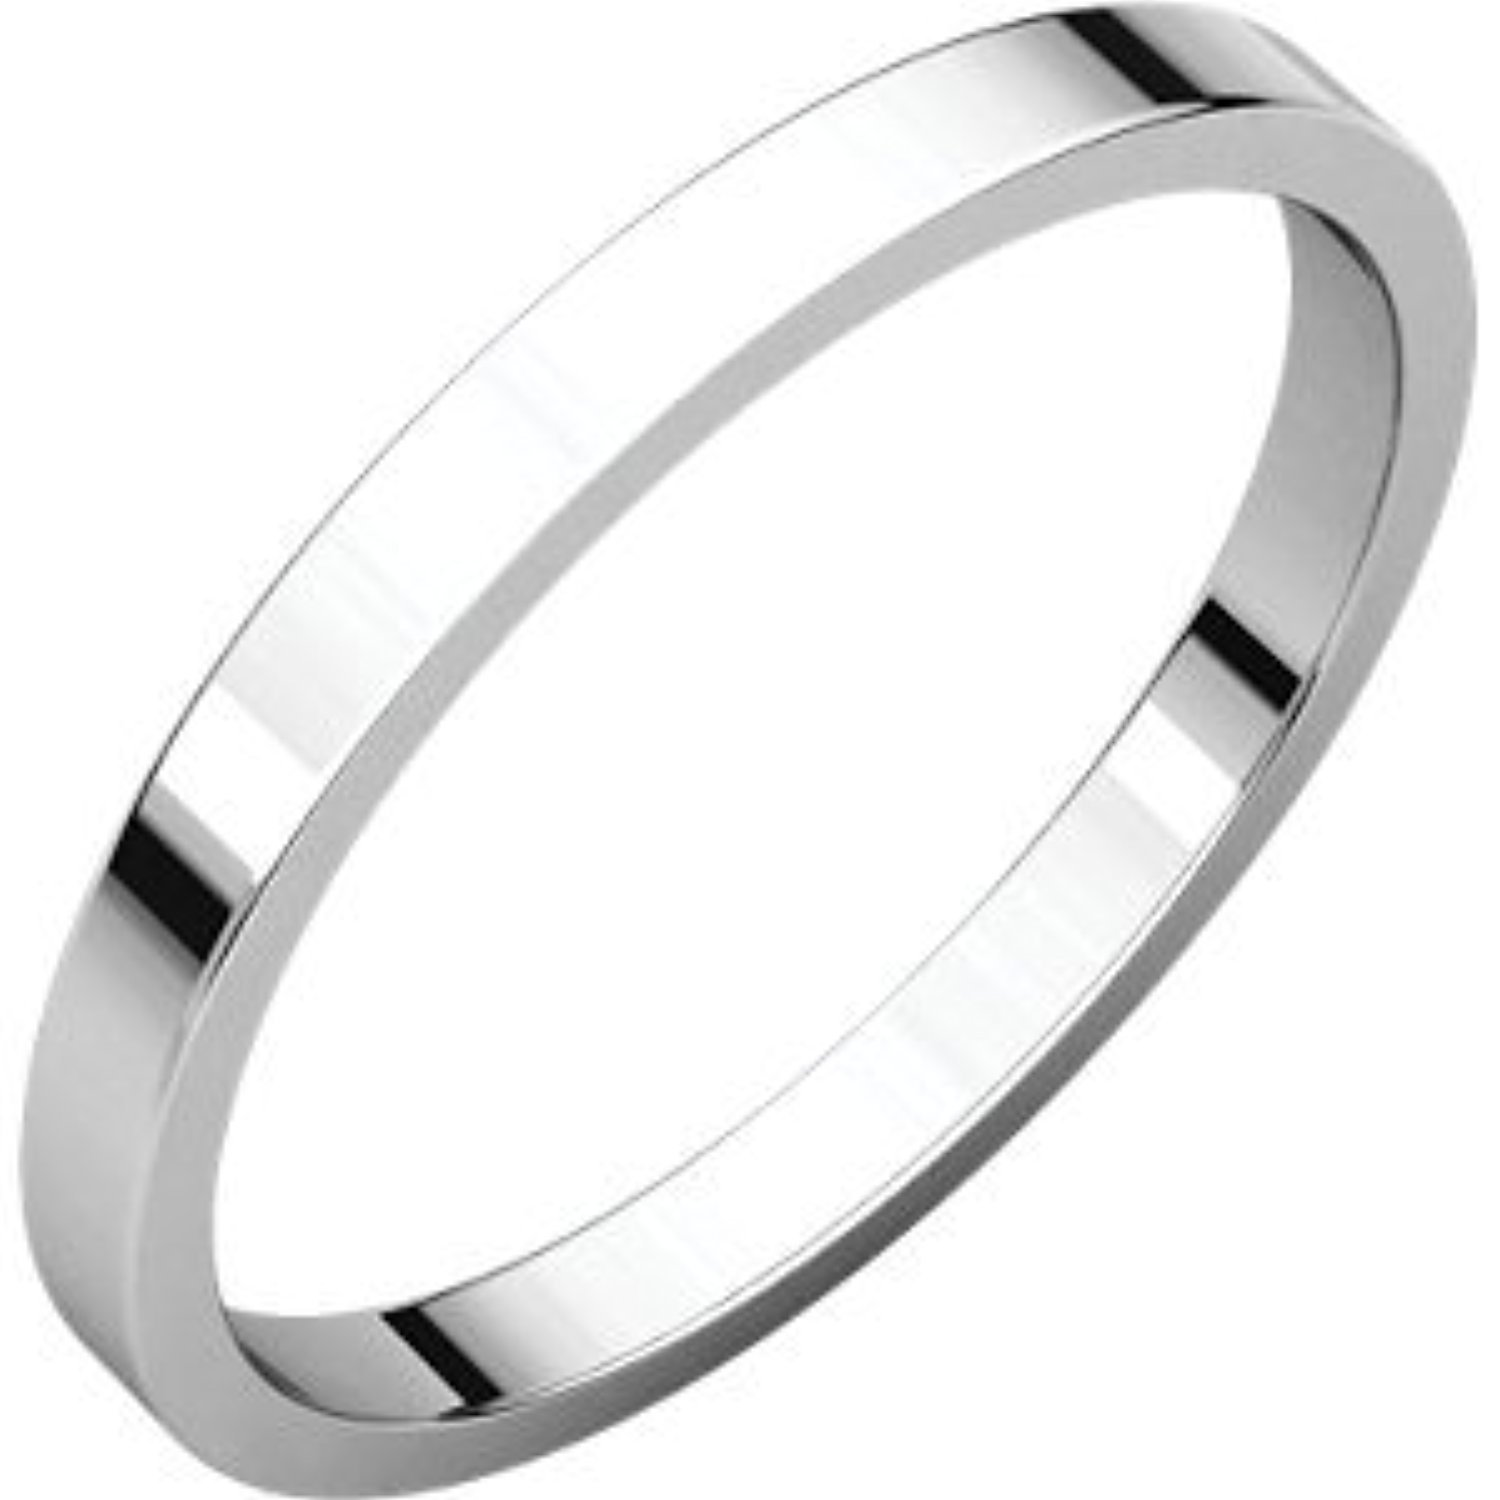 Sterling-silver Flat Bands